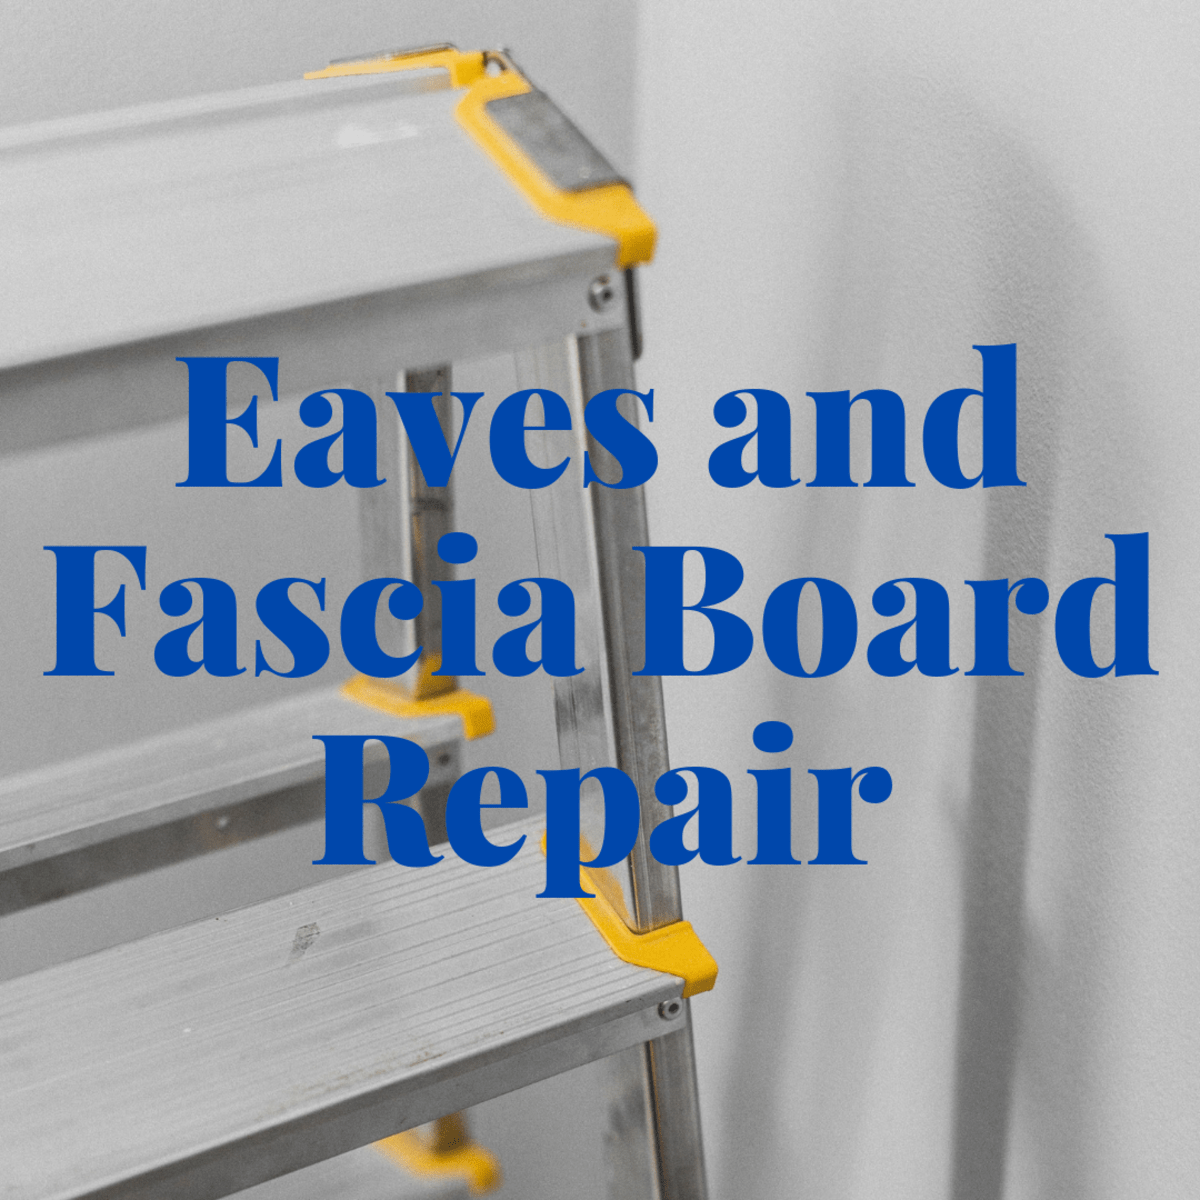 Fascia Board Eaves And Fascia Board Repair How Not To Fix Them Dengarden